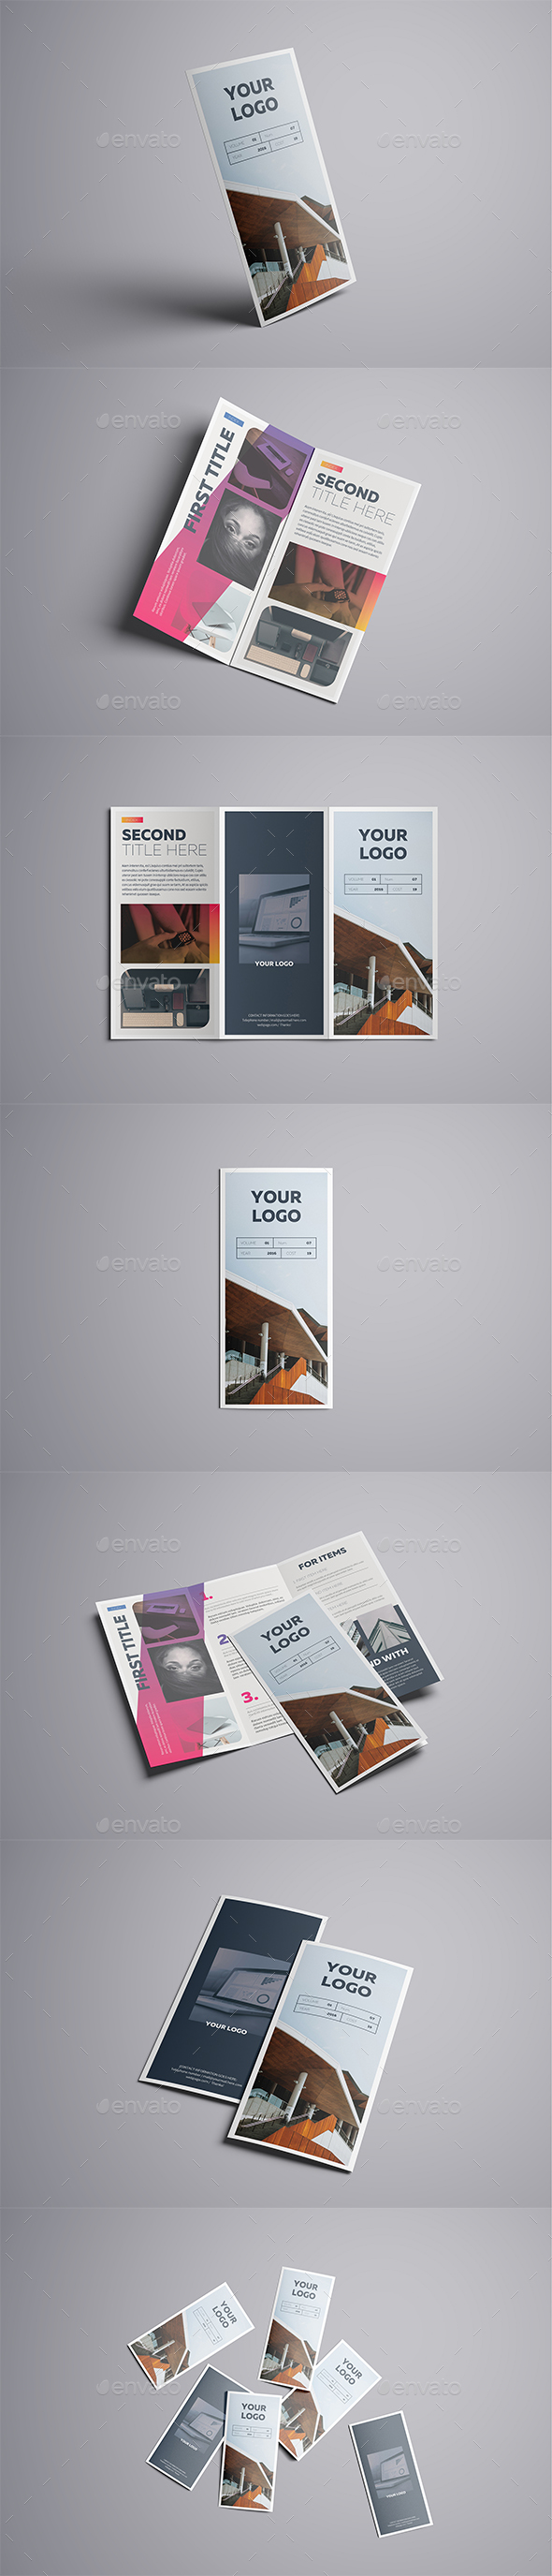 Gradient Trifold A4 Template - Brochures Print Templates